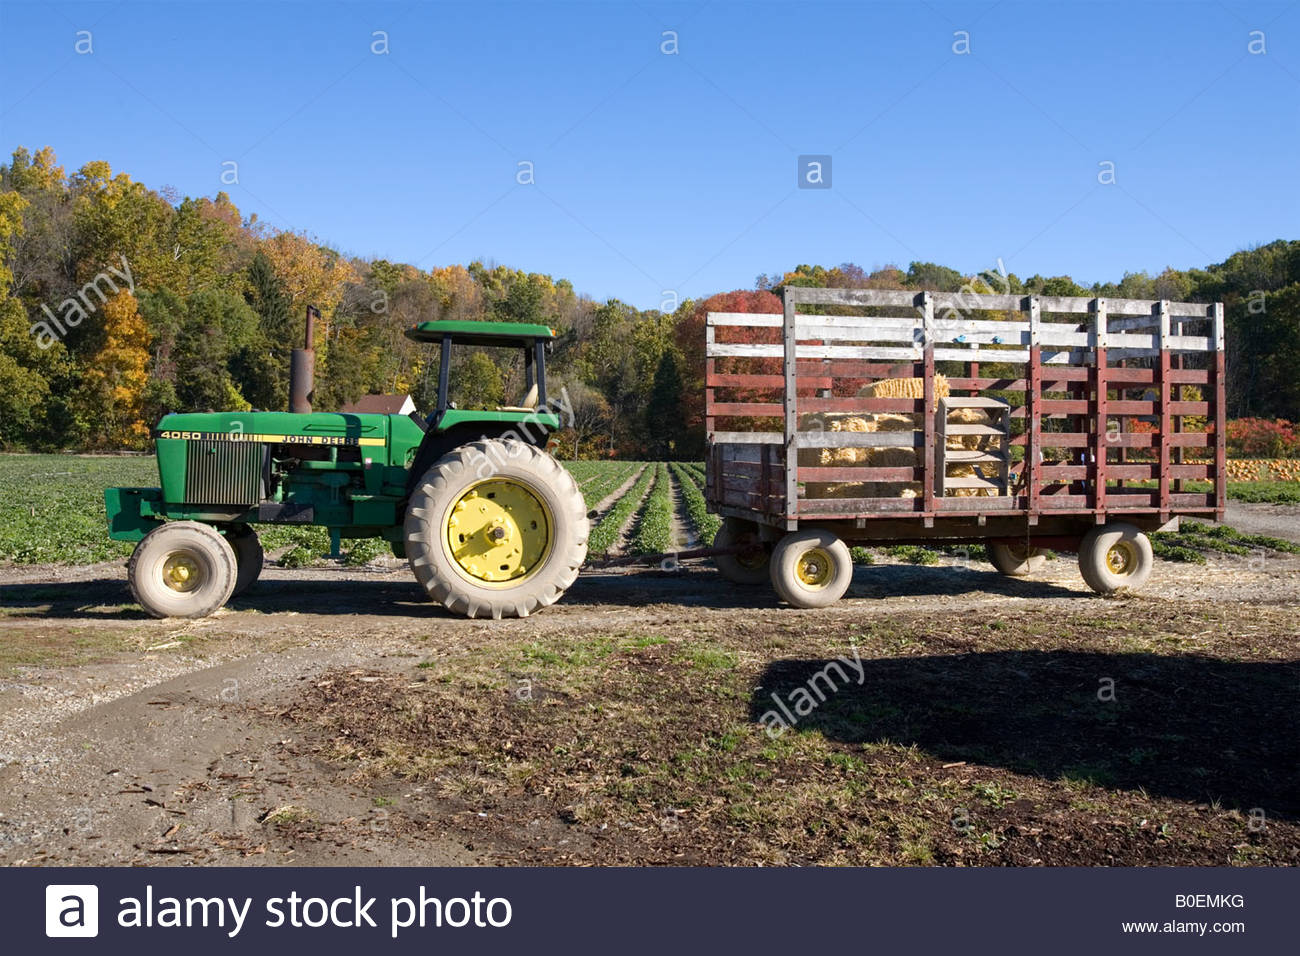 Tractor Pulling Trailer : Farm tractor pulling hay trailer for ride stock photo